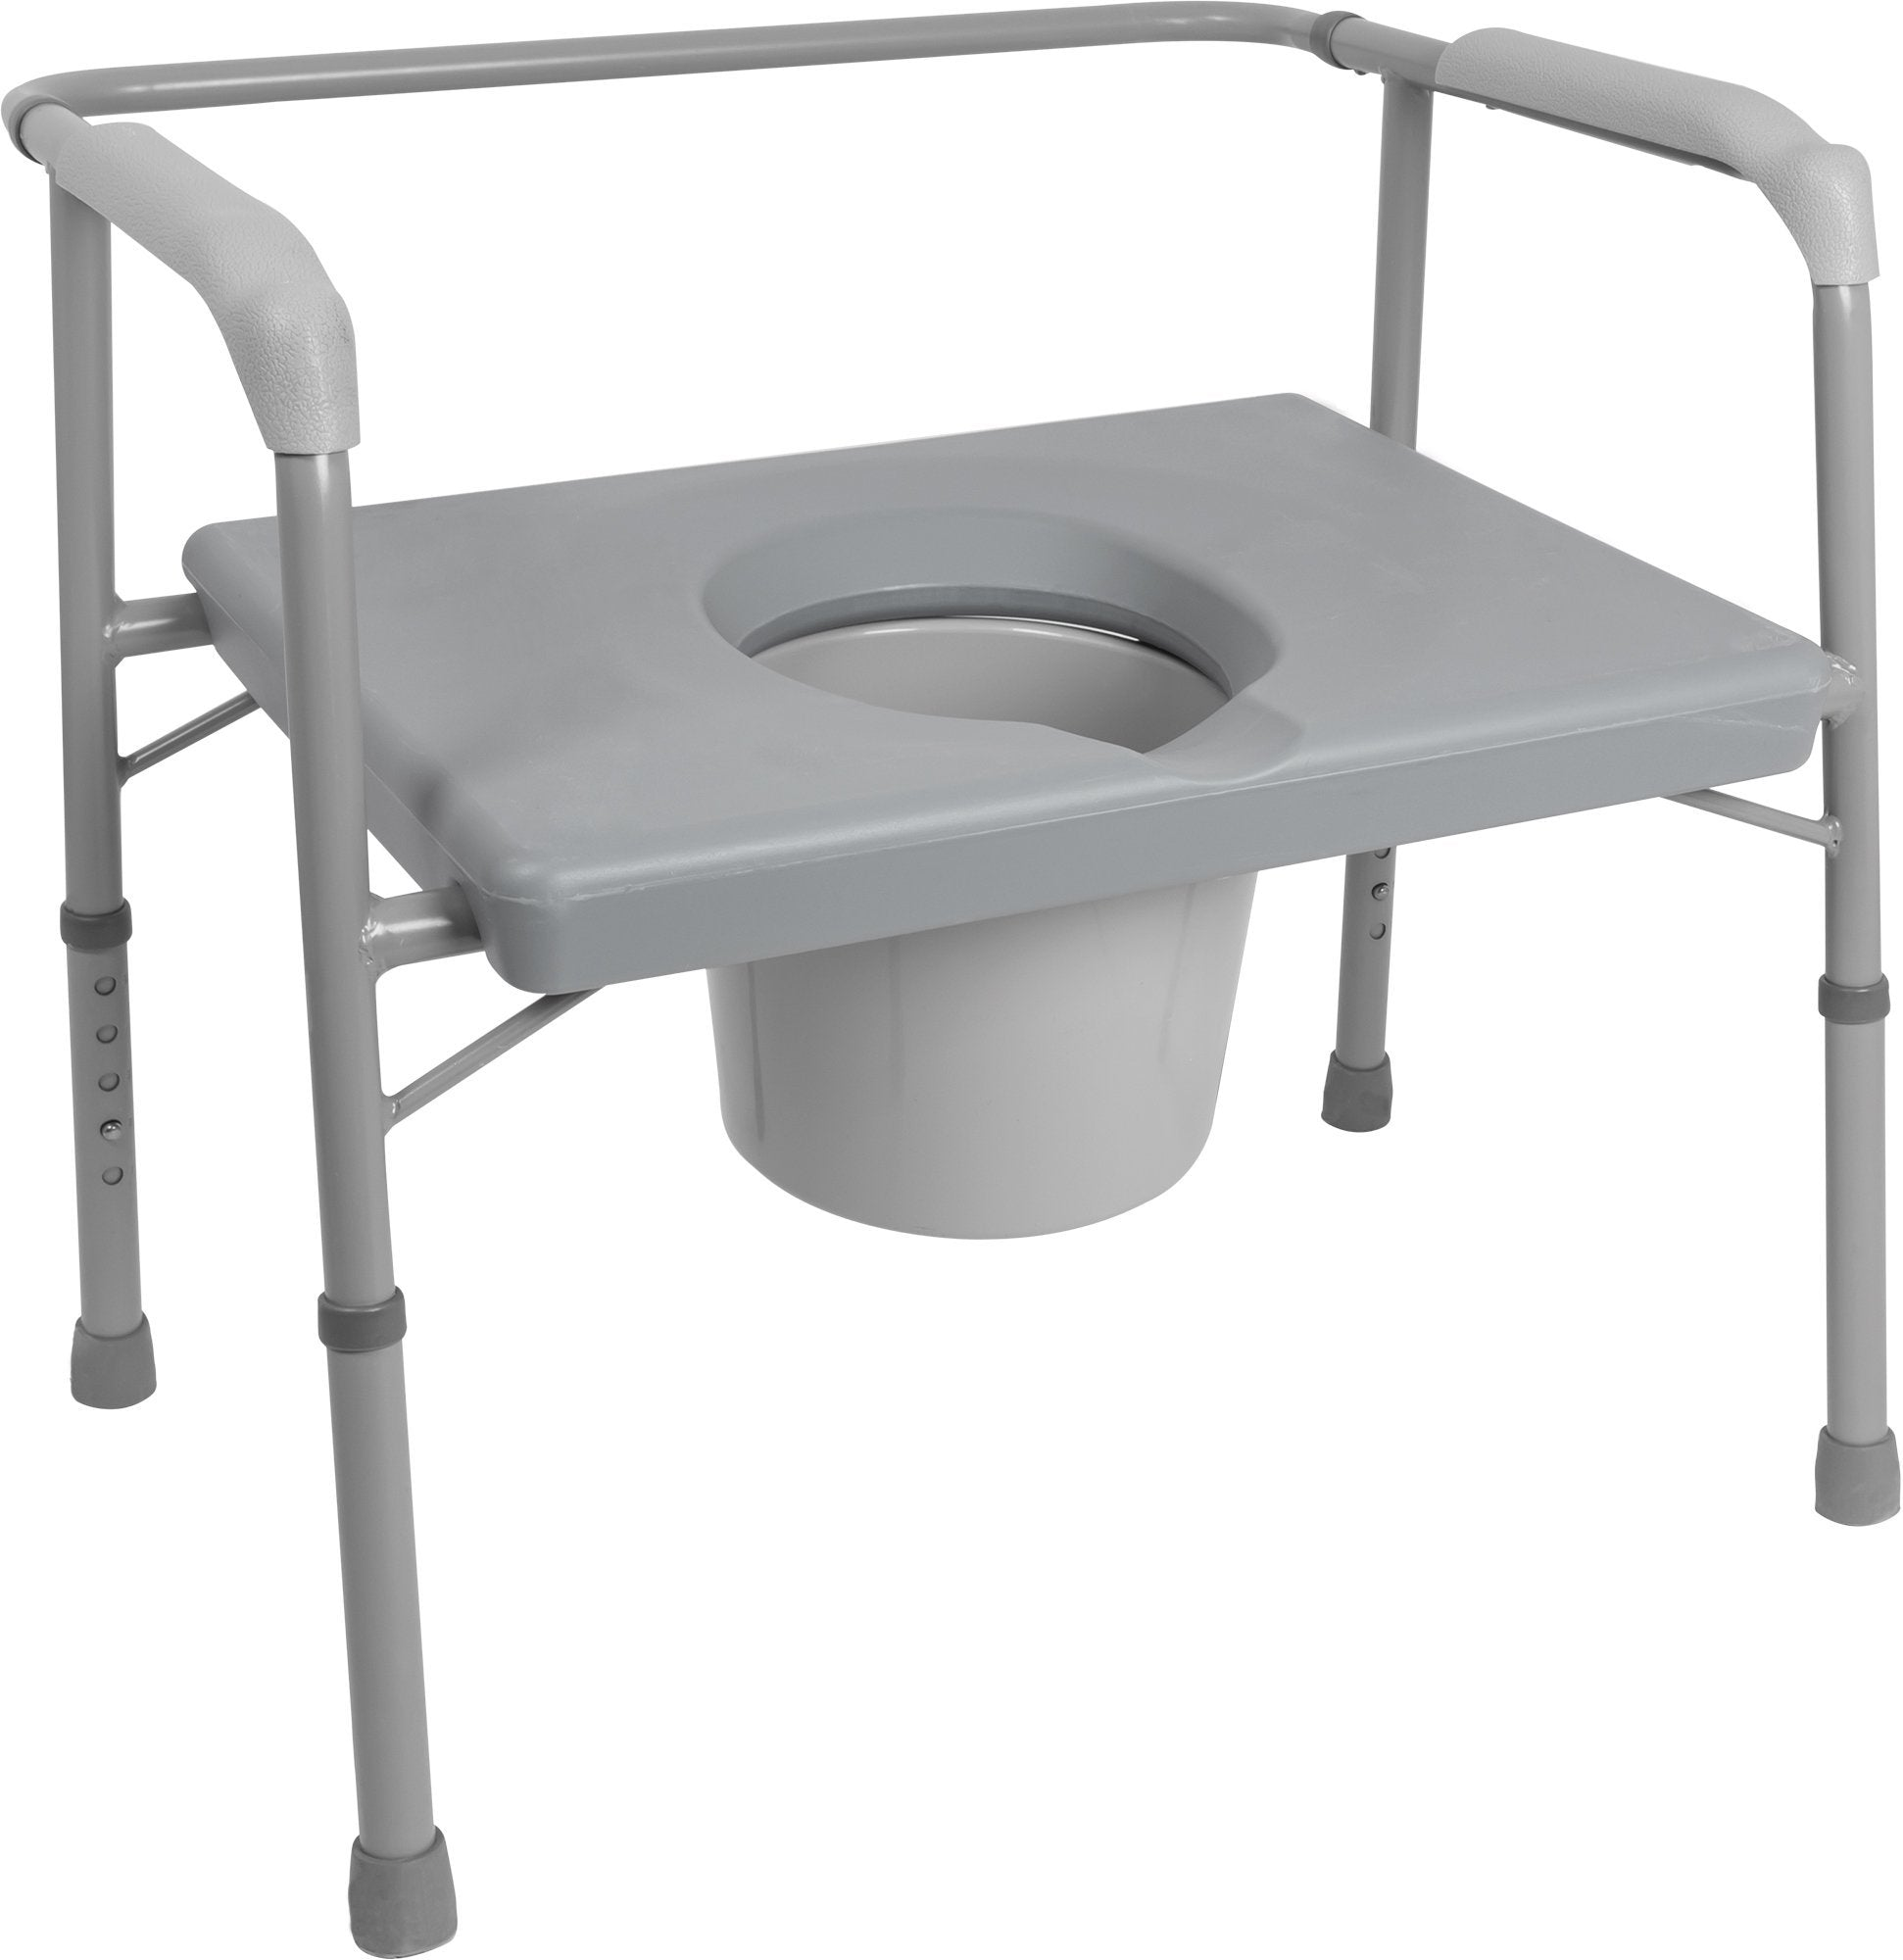 "Bariatric 24"" Commode, 650lb Weight Capacity - US MED REHAB"